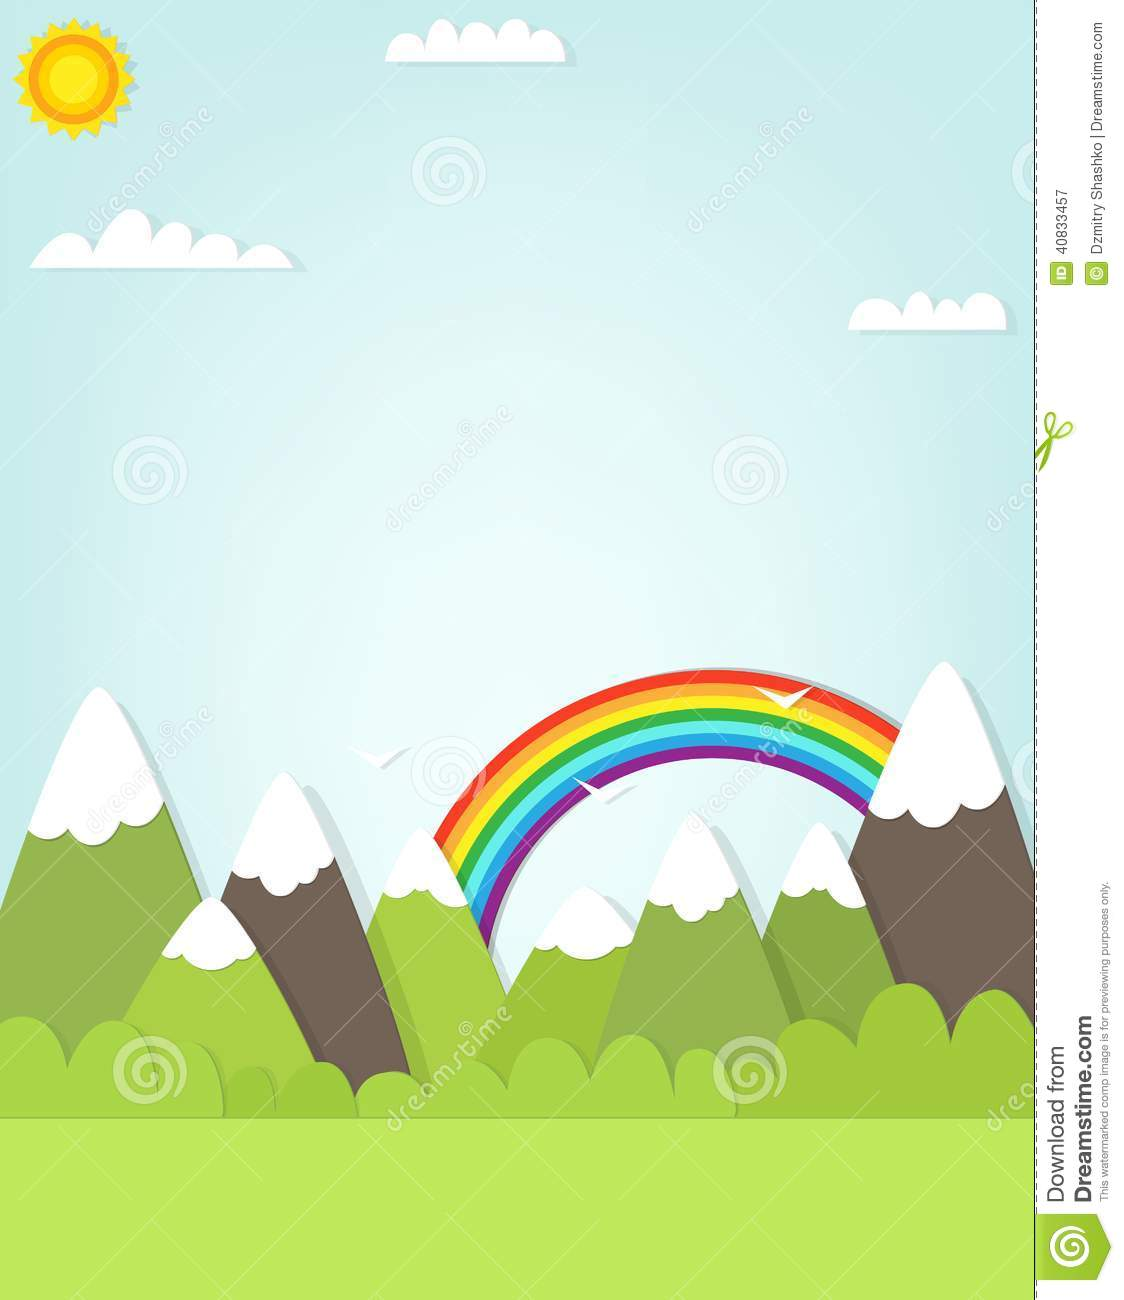 Cliparts Landscape with Rainbow